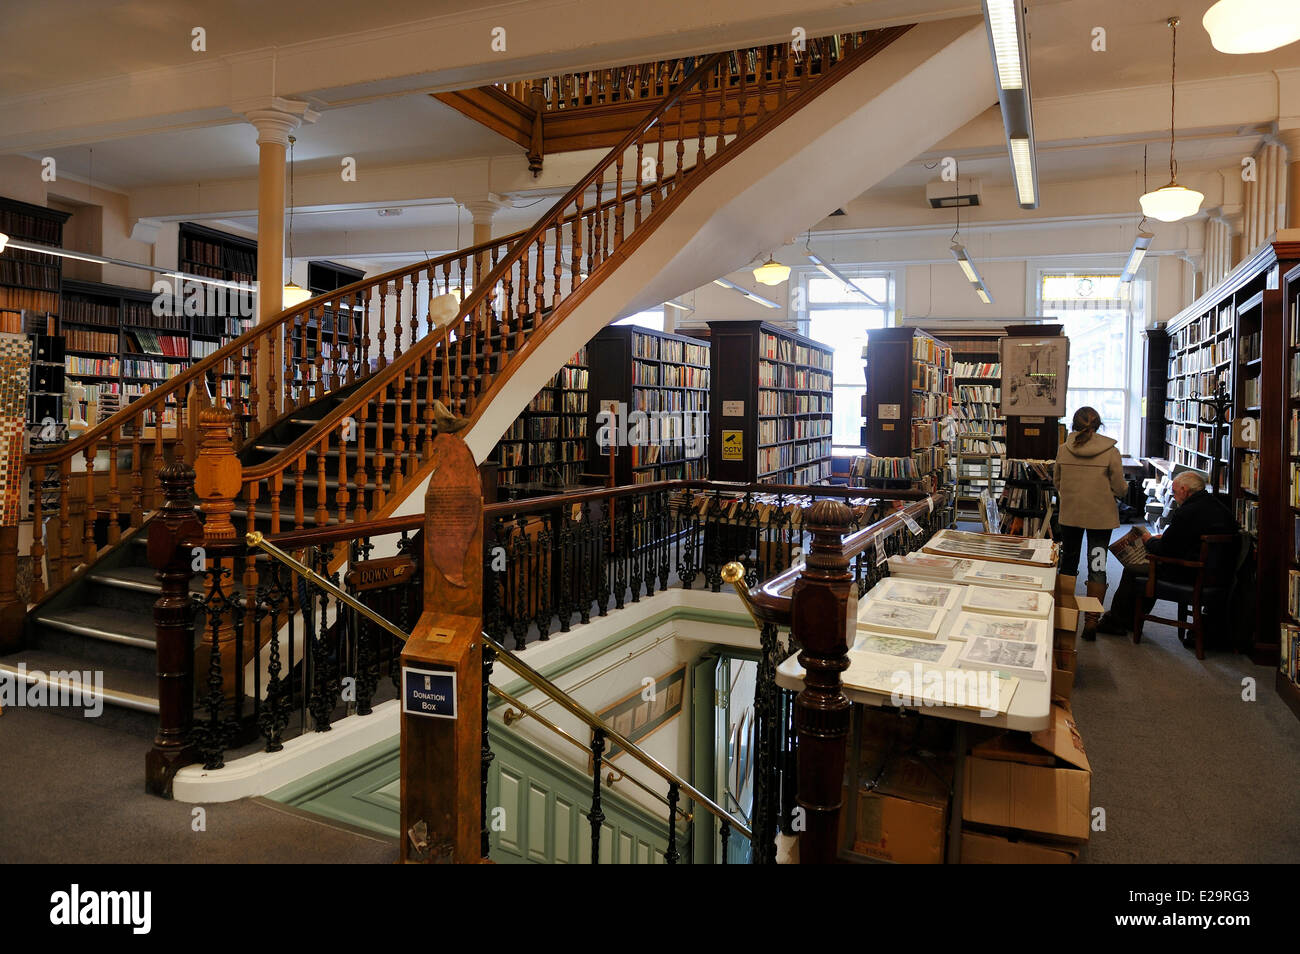 United Kingdom, Northern Ireland, Belfast, Linen Hall Library - Stock Image